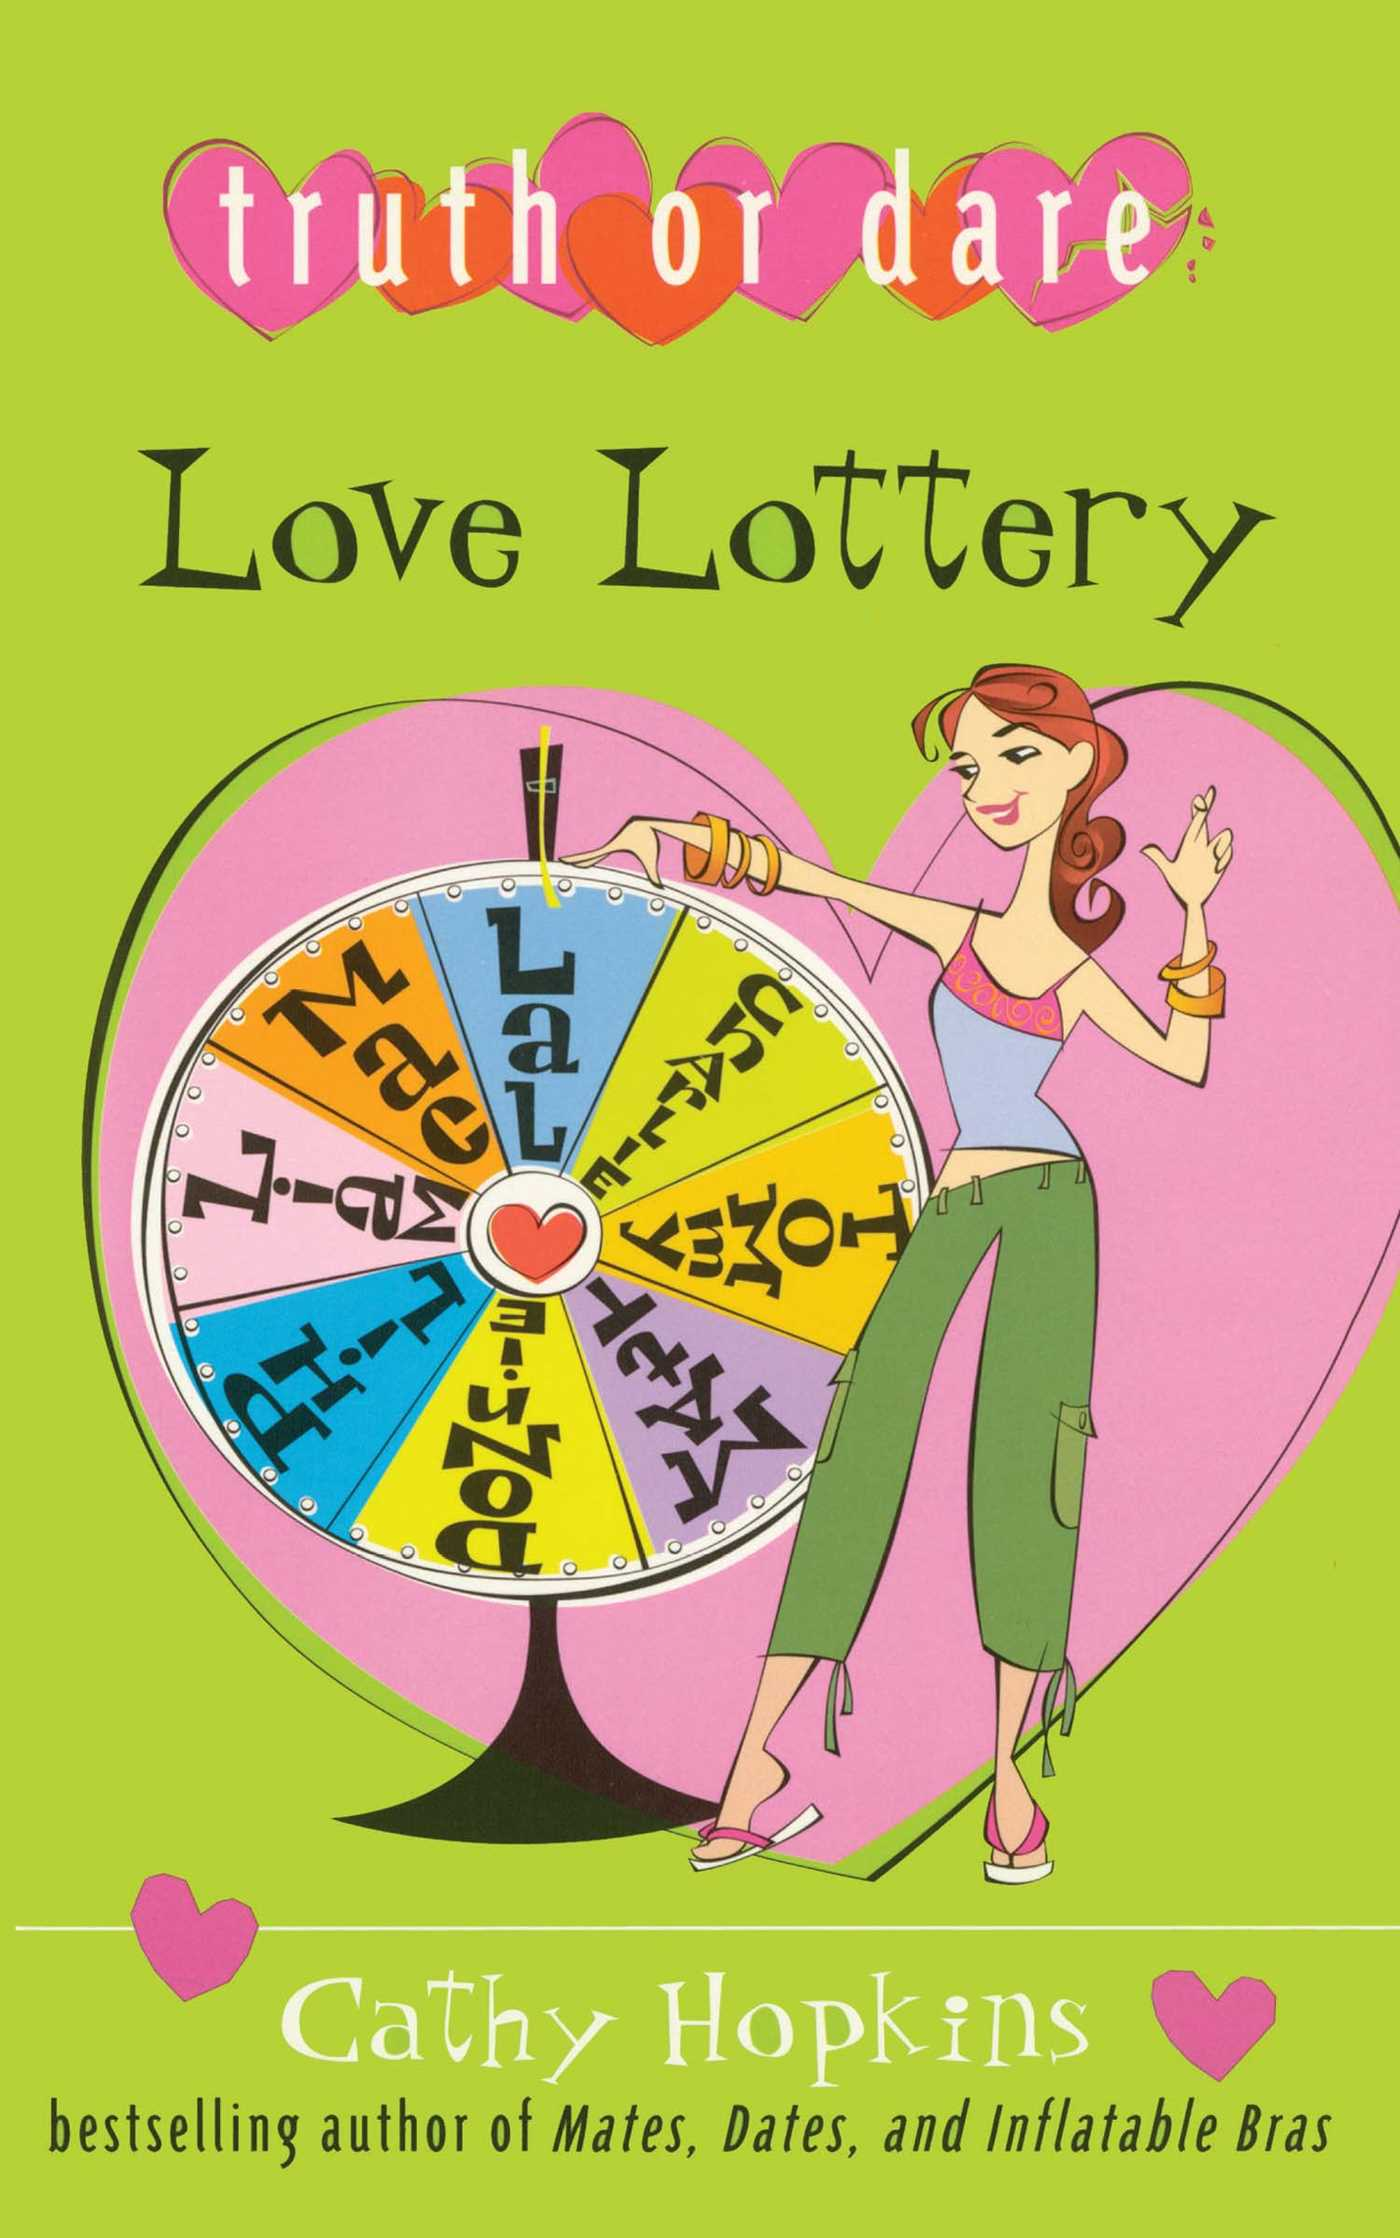 Love-lottery-9781442471764_hr